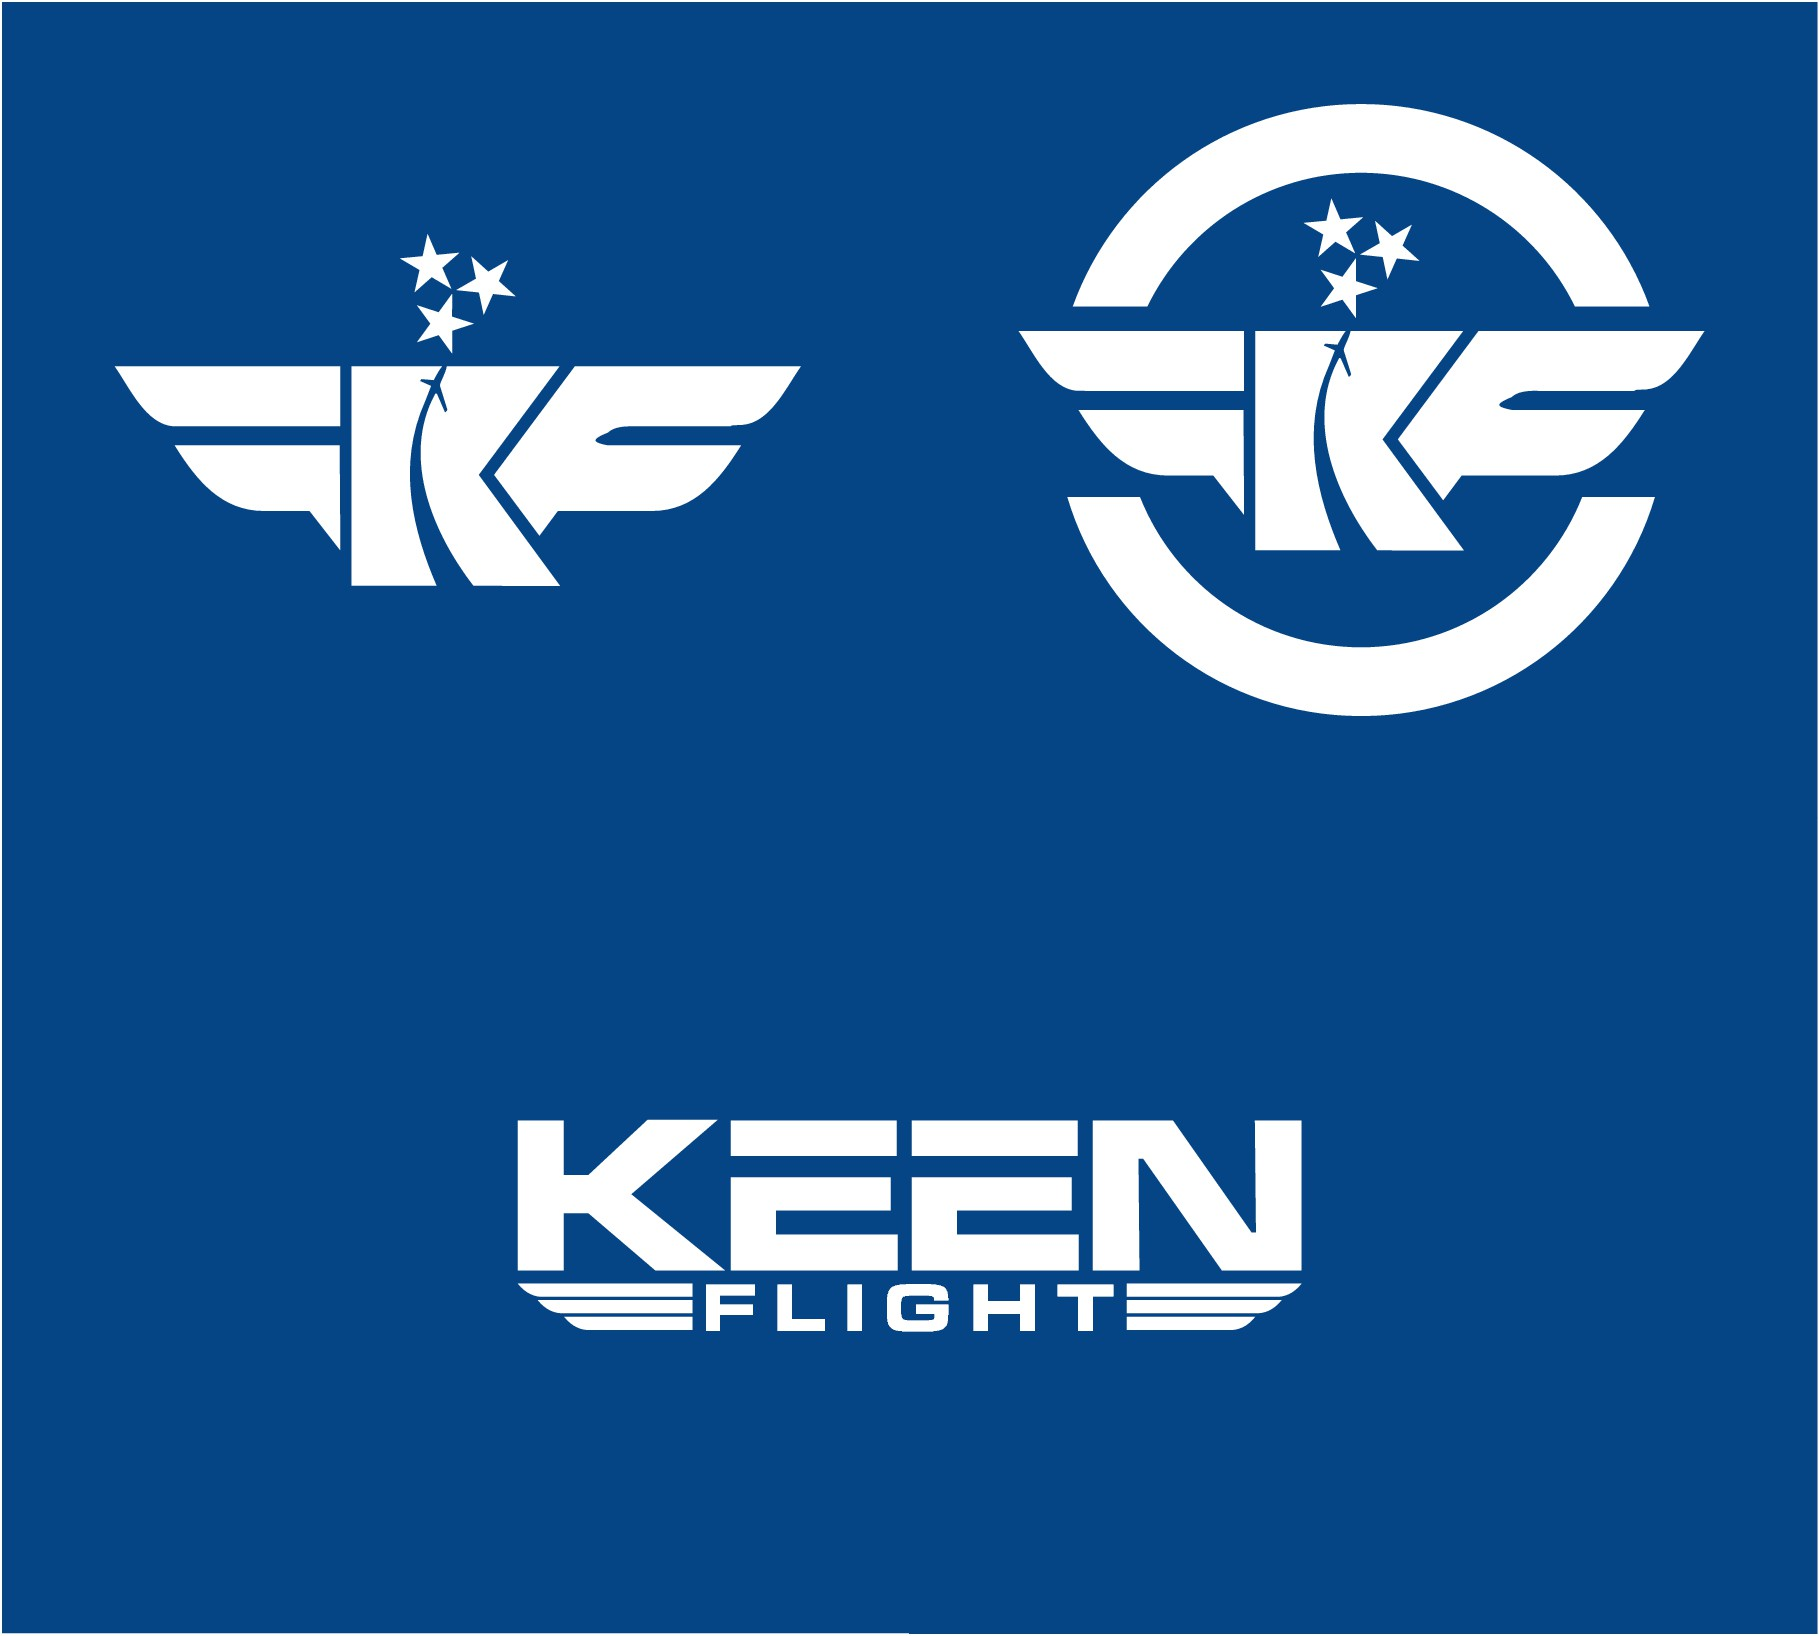 Keen Flight seeks a KEEN design from you!